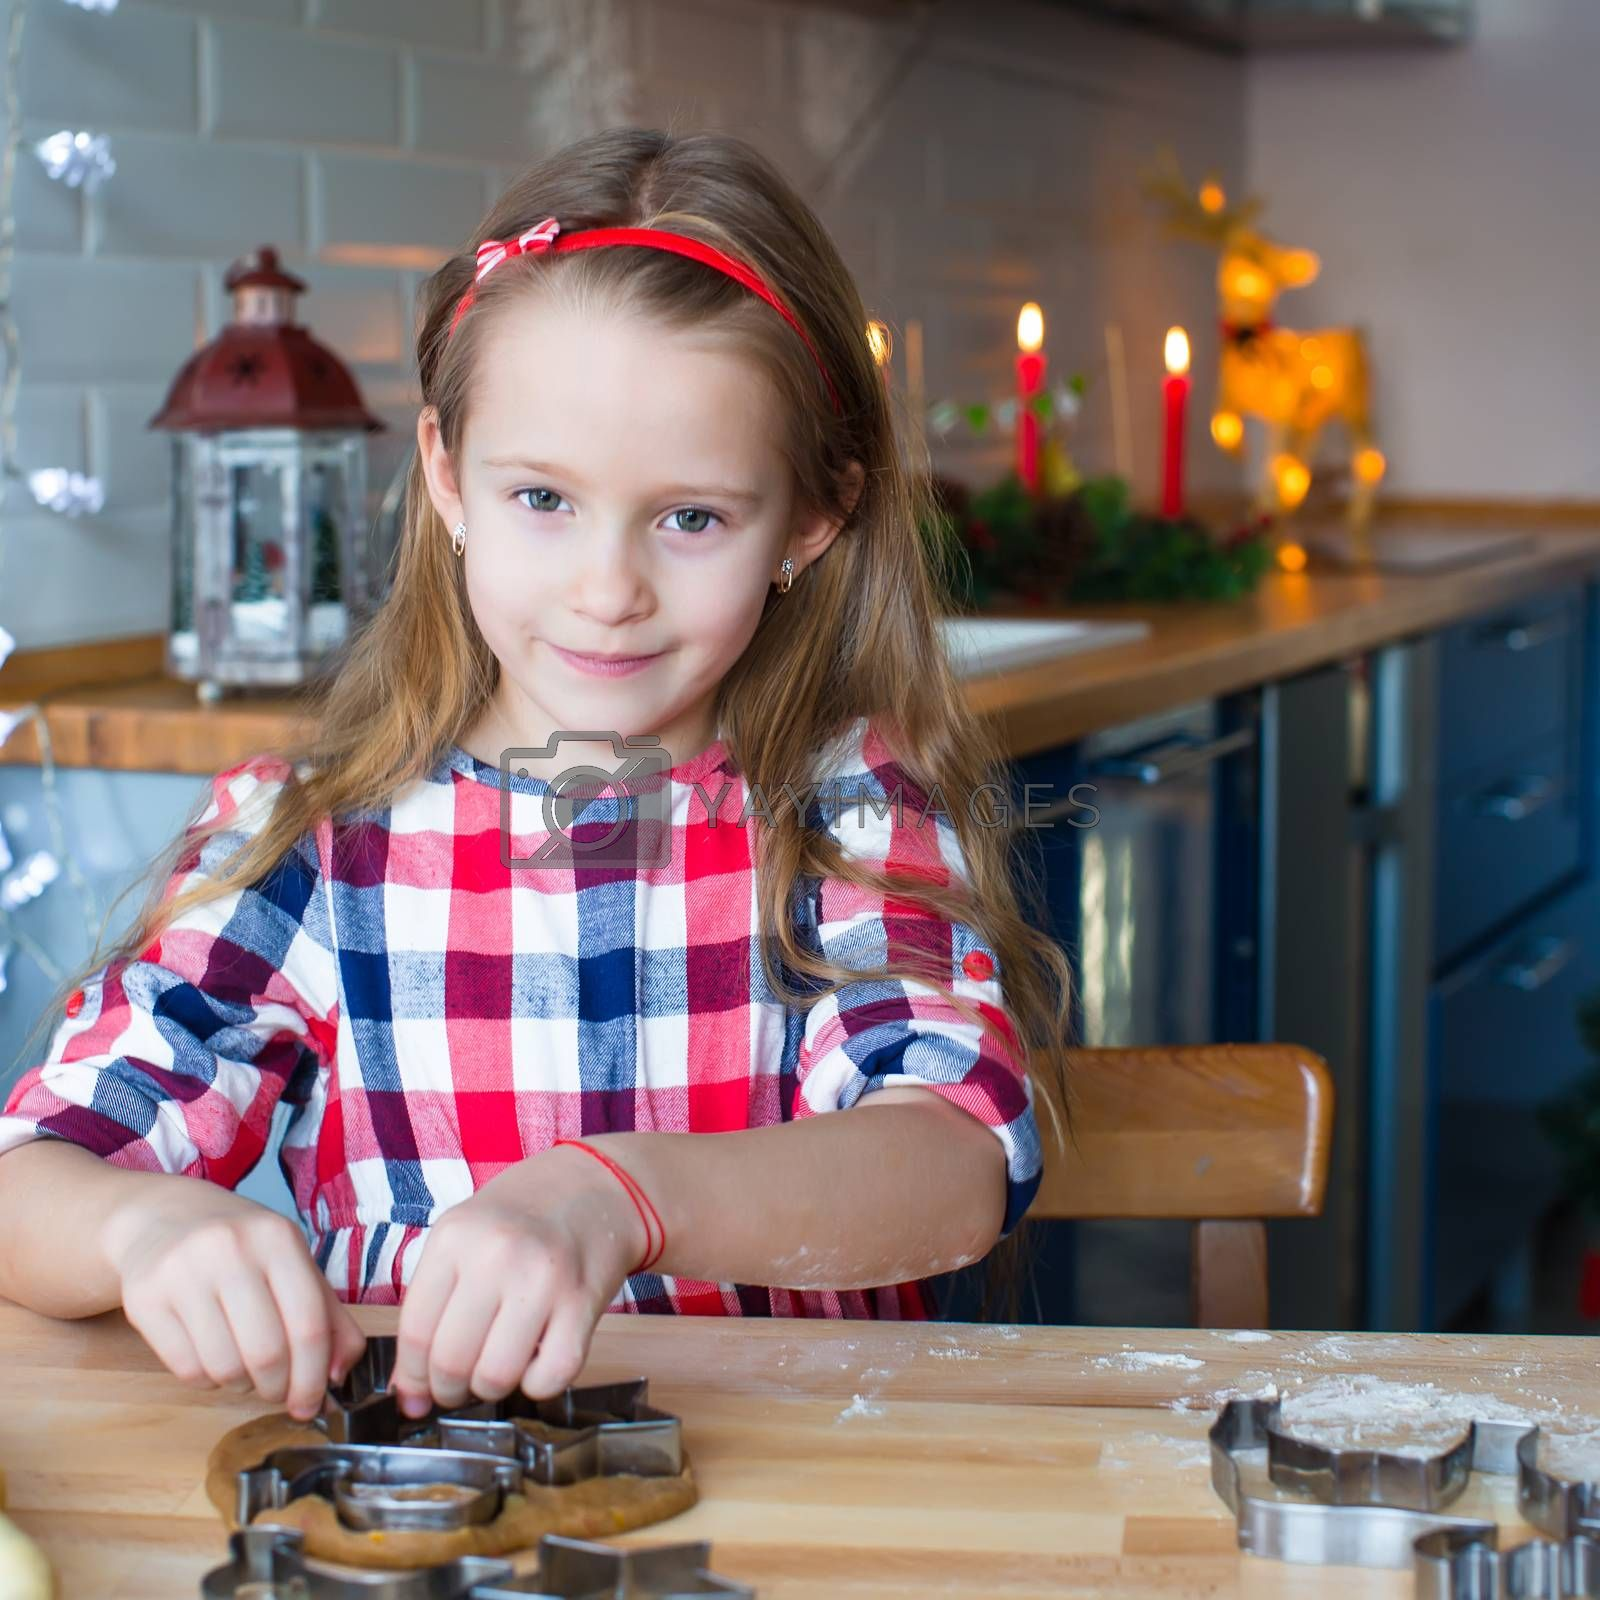 Little adorable girl baking Christmas cookies at home indoor